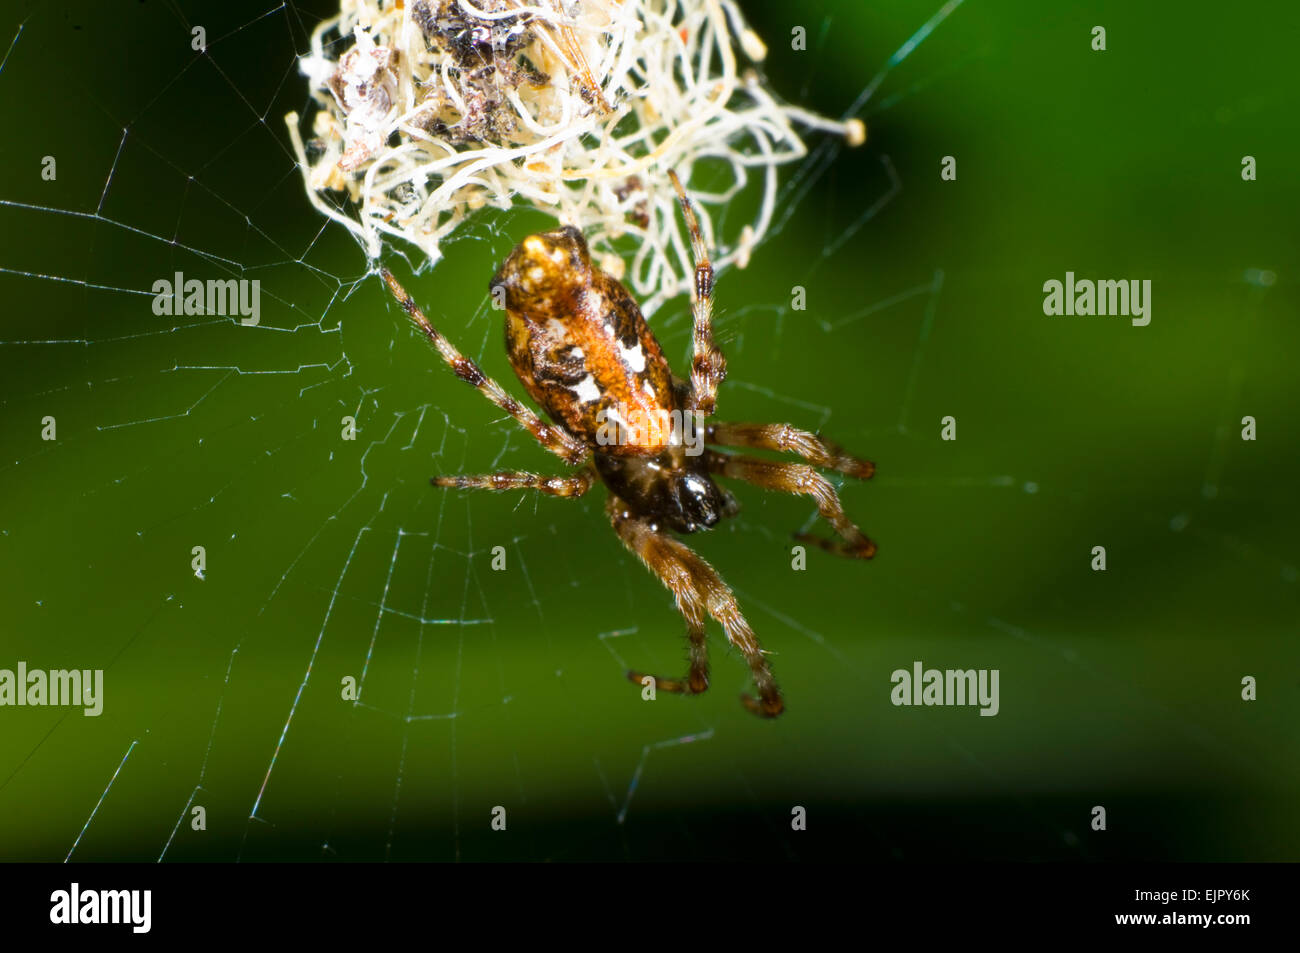 4898aeaded0 Cyclosa Spider Stock Photos & Cyclosa Spider Stock Images - Alamy